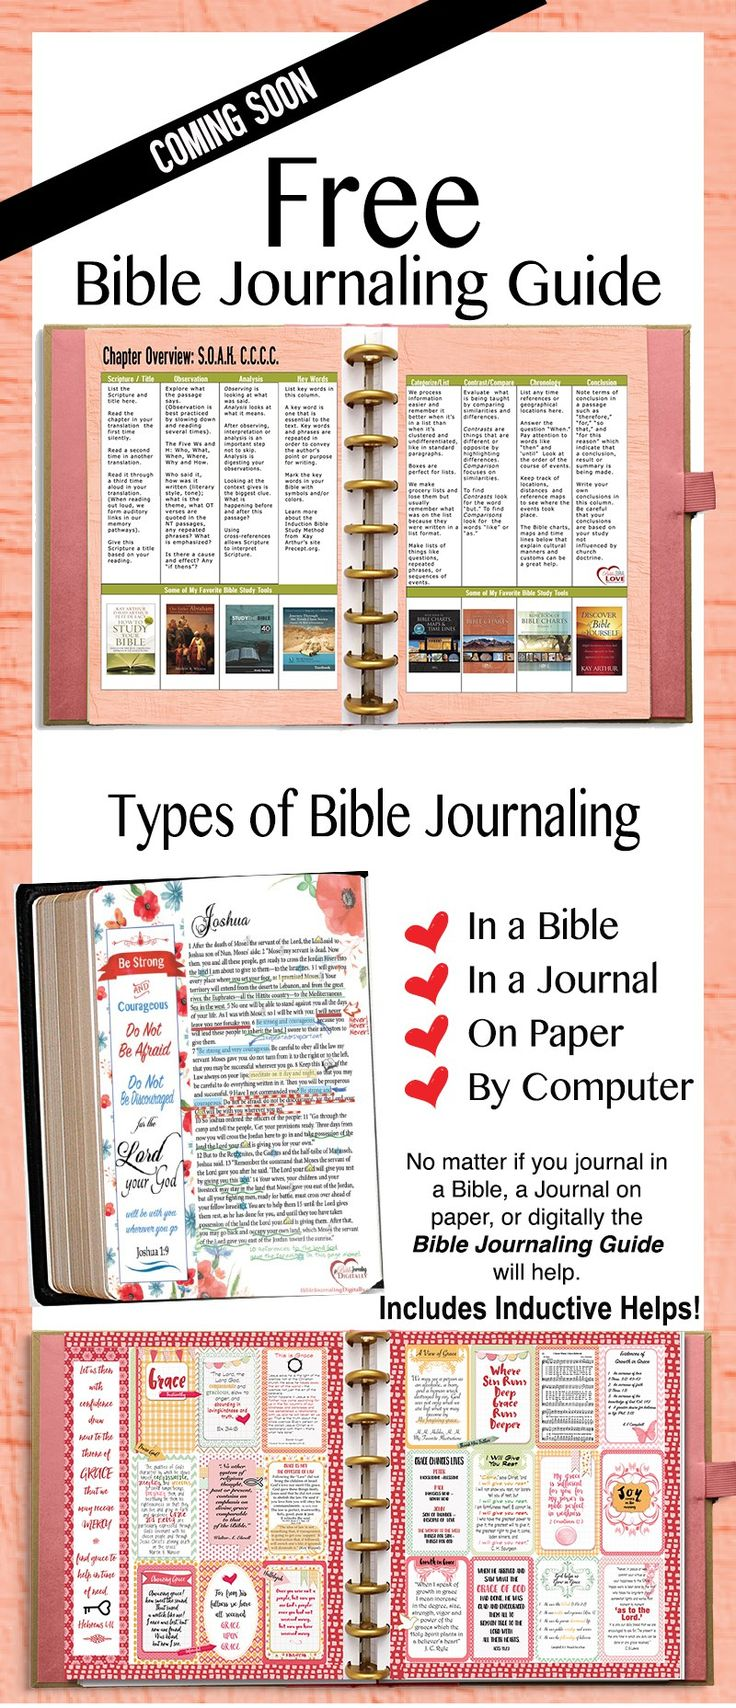 FREE-BIBLE-JOURNAL-GUIDE No matter if you journal in a Bible, a Journal on  paper, or digitally the Bible Journaling Guide will help.  Designed to fit inside a #HappyPlanner but can be put in notebook